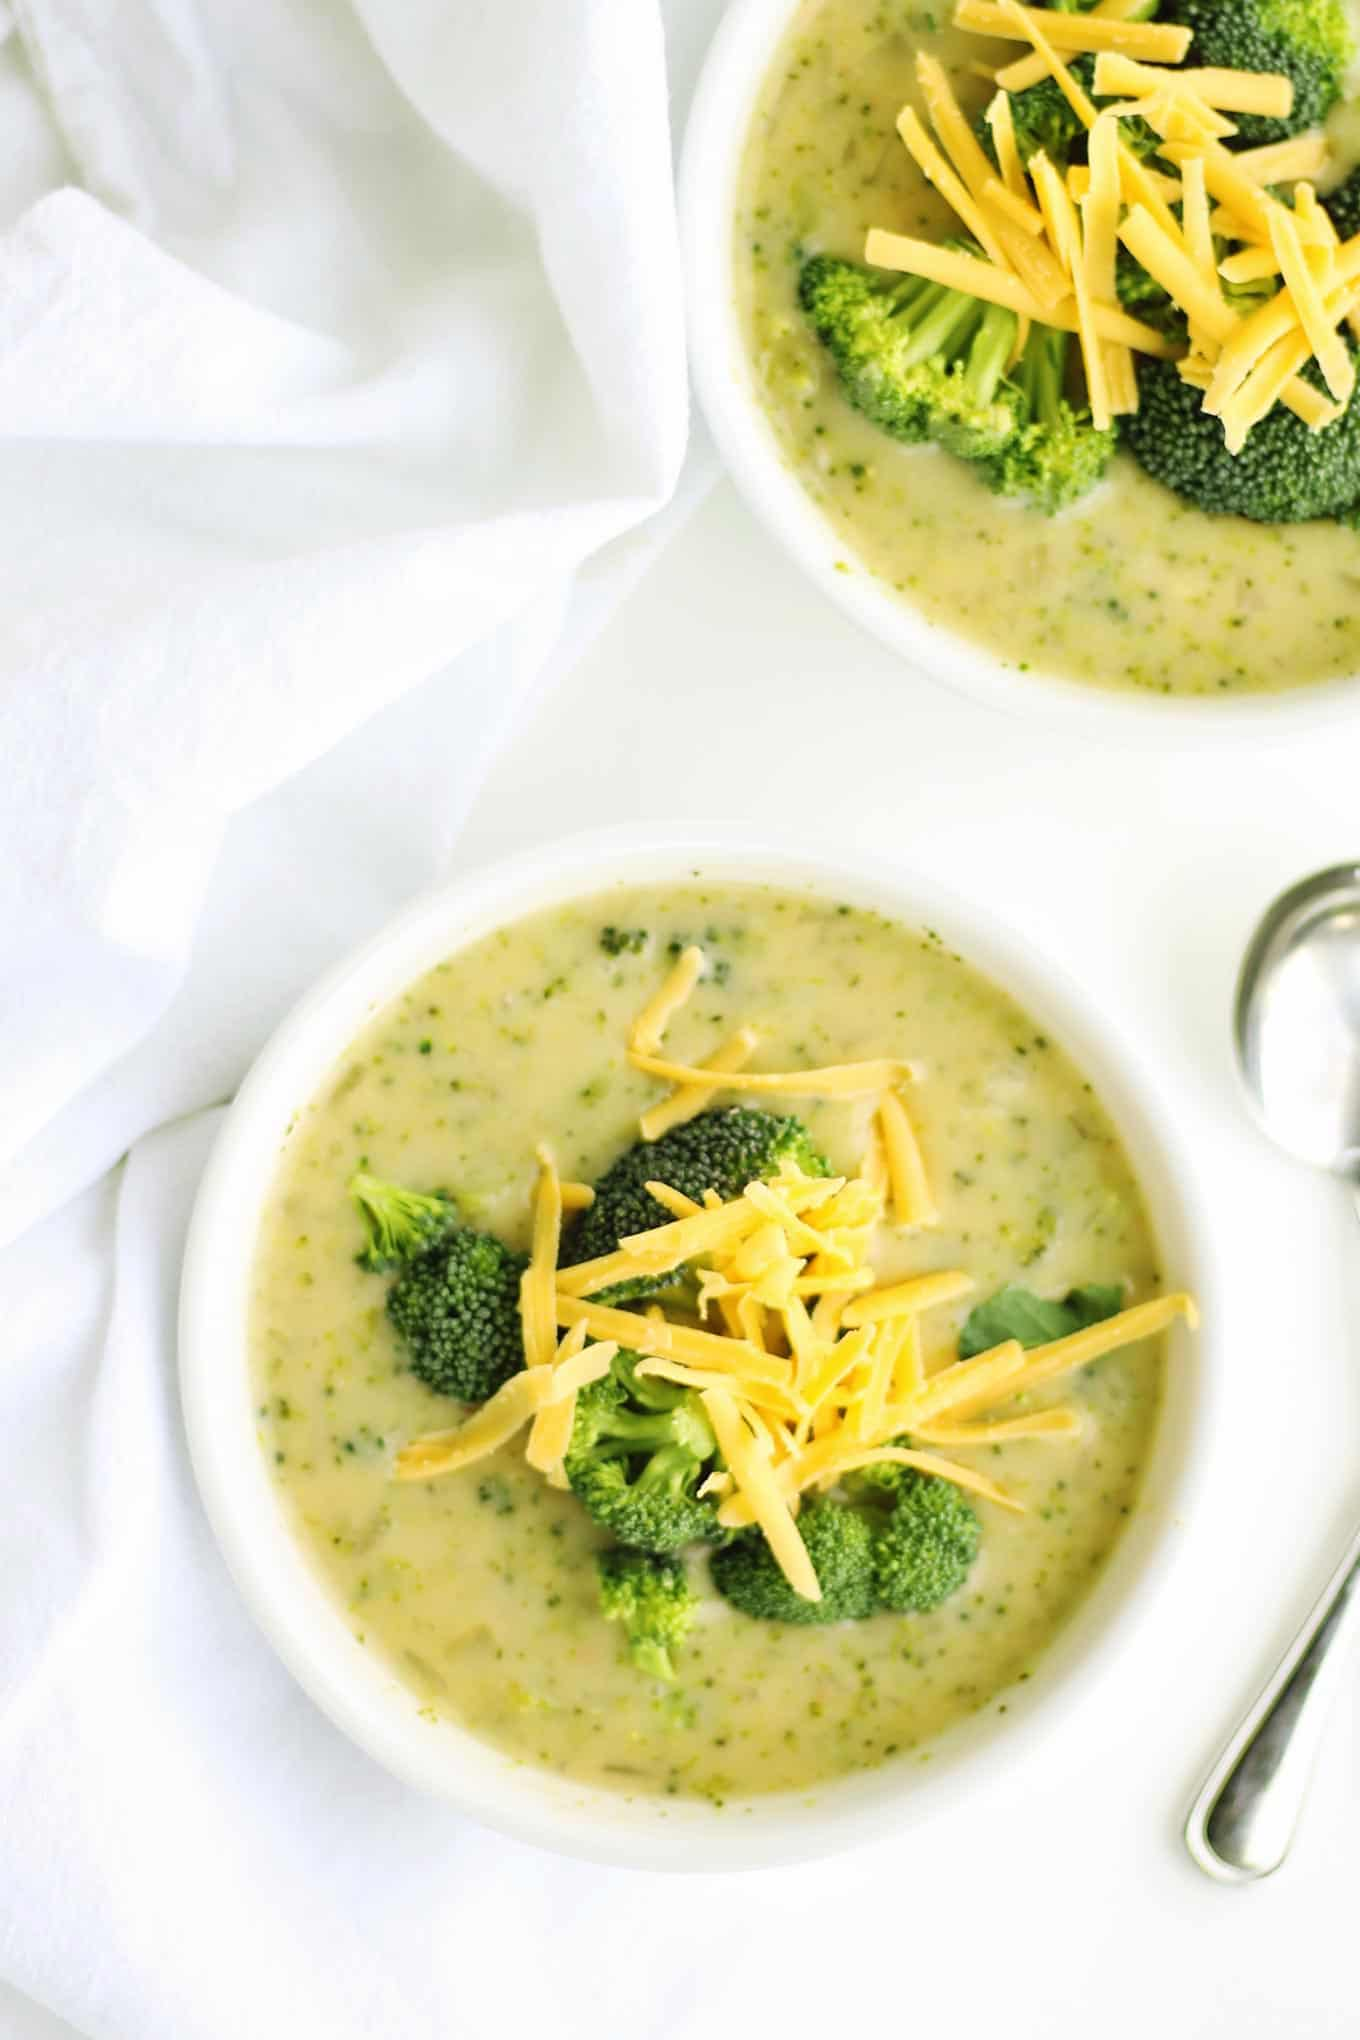 Healthy broccoli cheddar soup made with a secret ingredient! Just as delicious as the buttery, creamy version, but with so much more protein and fiber. YUM! // Rhubarbarians / #skinnyrecipes #healthyrecipes #vegetarian #recipe #broccoli #soup #comfortfood